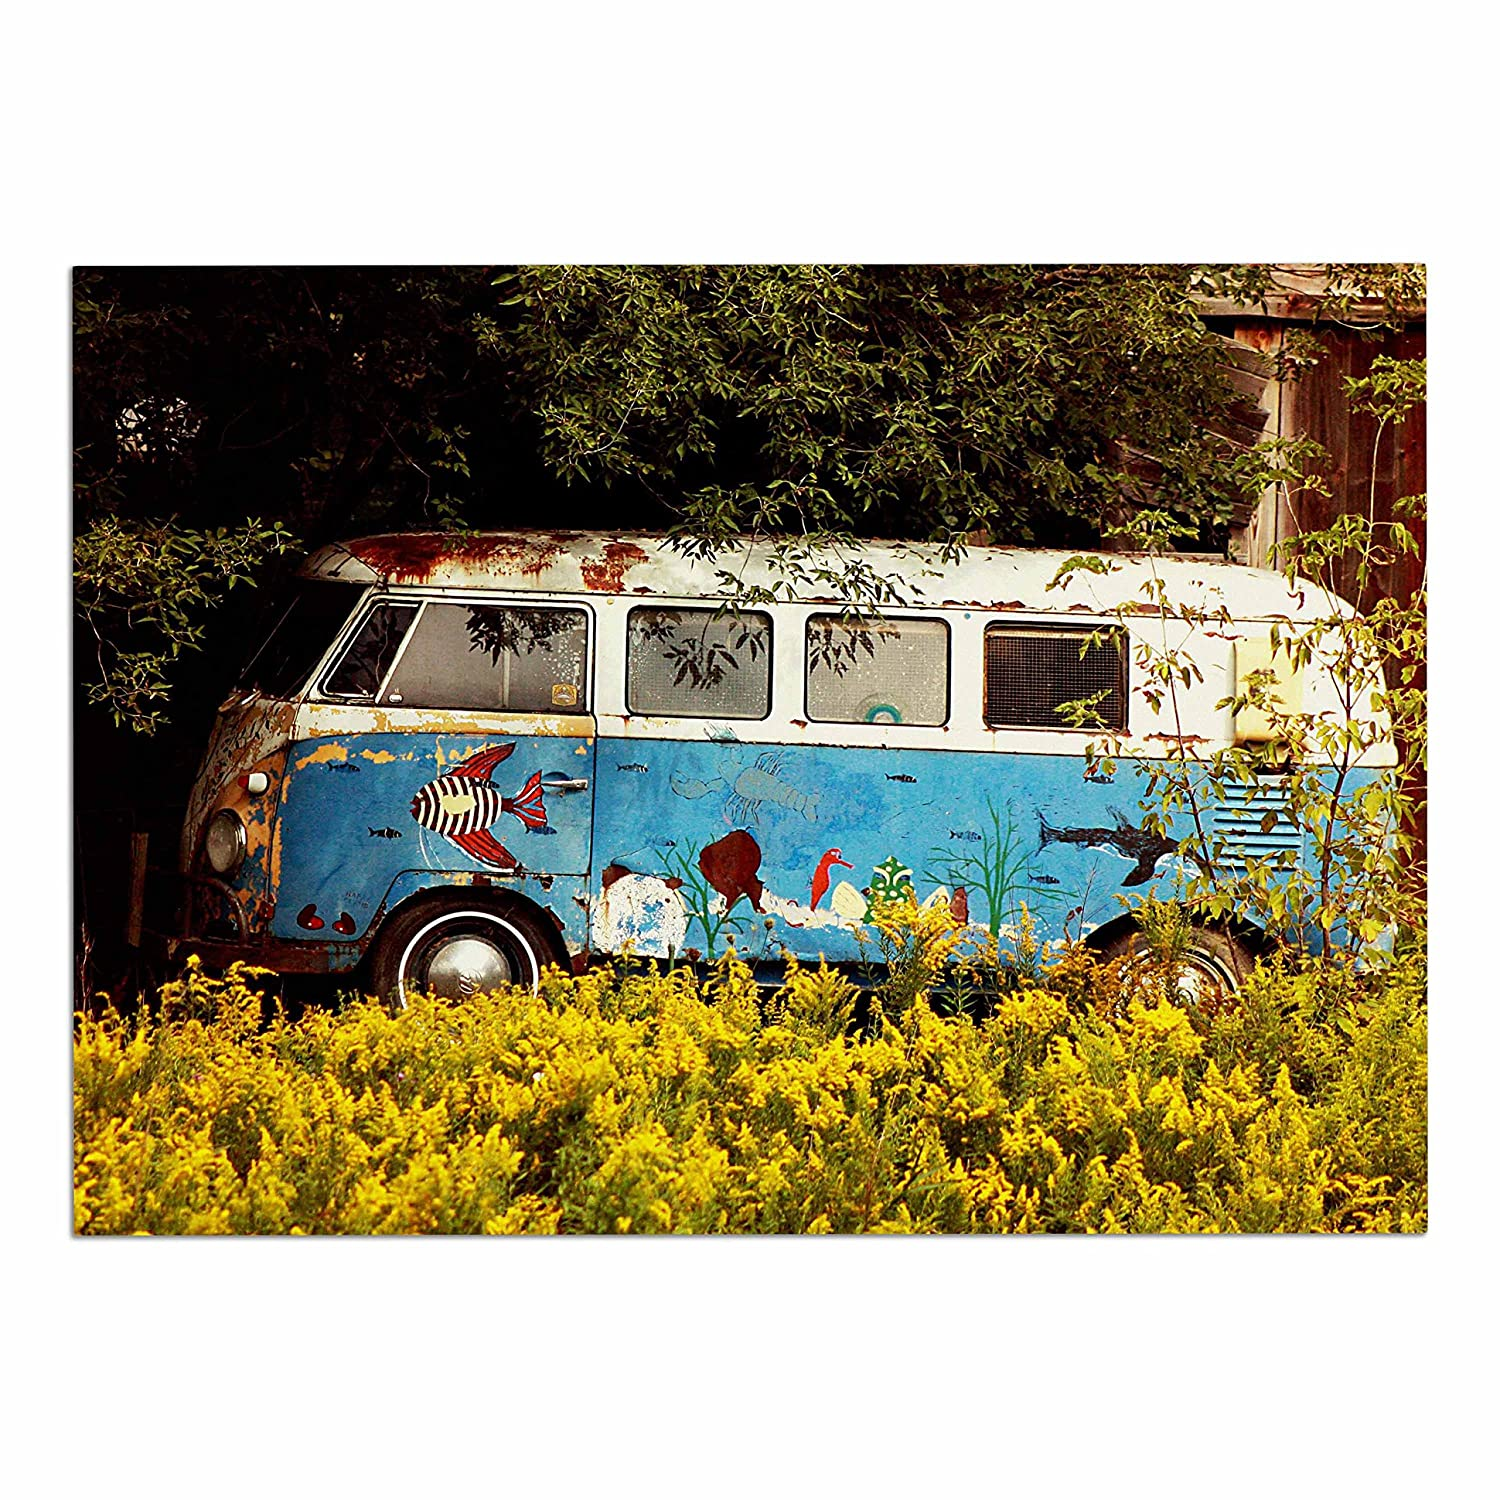 KESS InHouse AT1028ADM02 Angie Turner Hippie Bus bluee Yellow Dog Place Mat, 24 x15